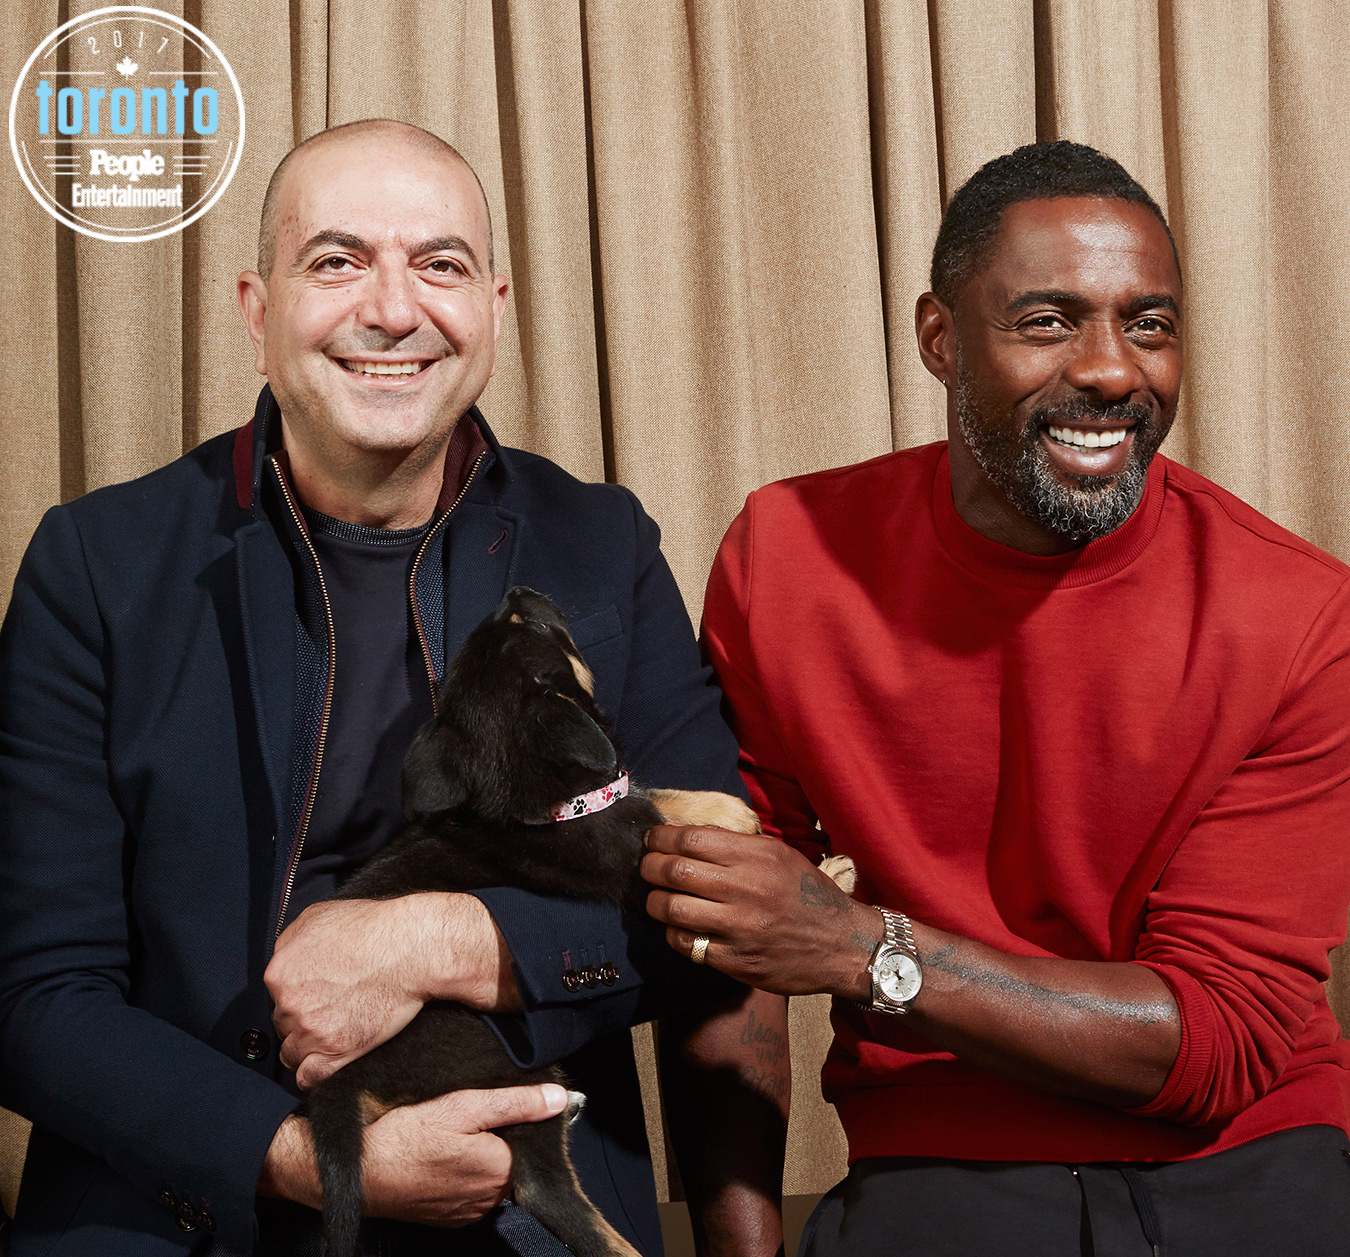 Hanny Abu-Assad, Idris Elba - The Mountain Between Us